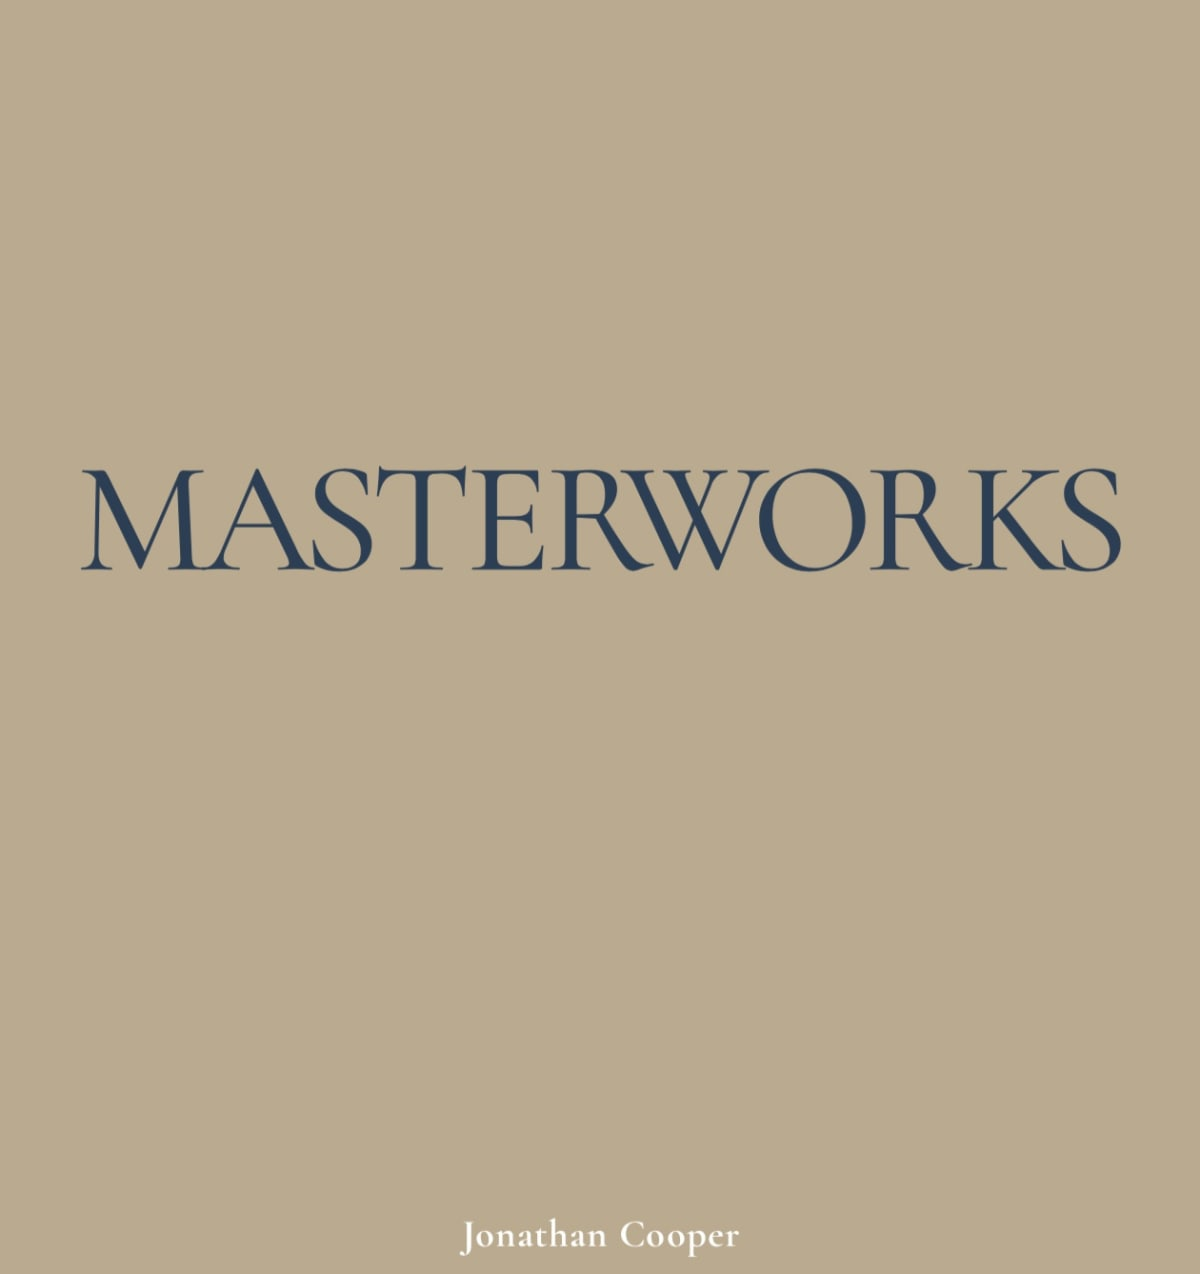 Masterworks | Presented by Jonathan Cooper